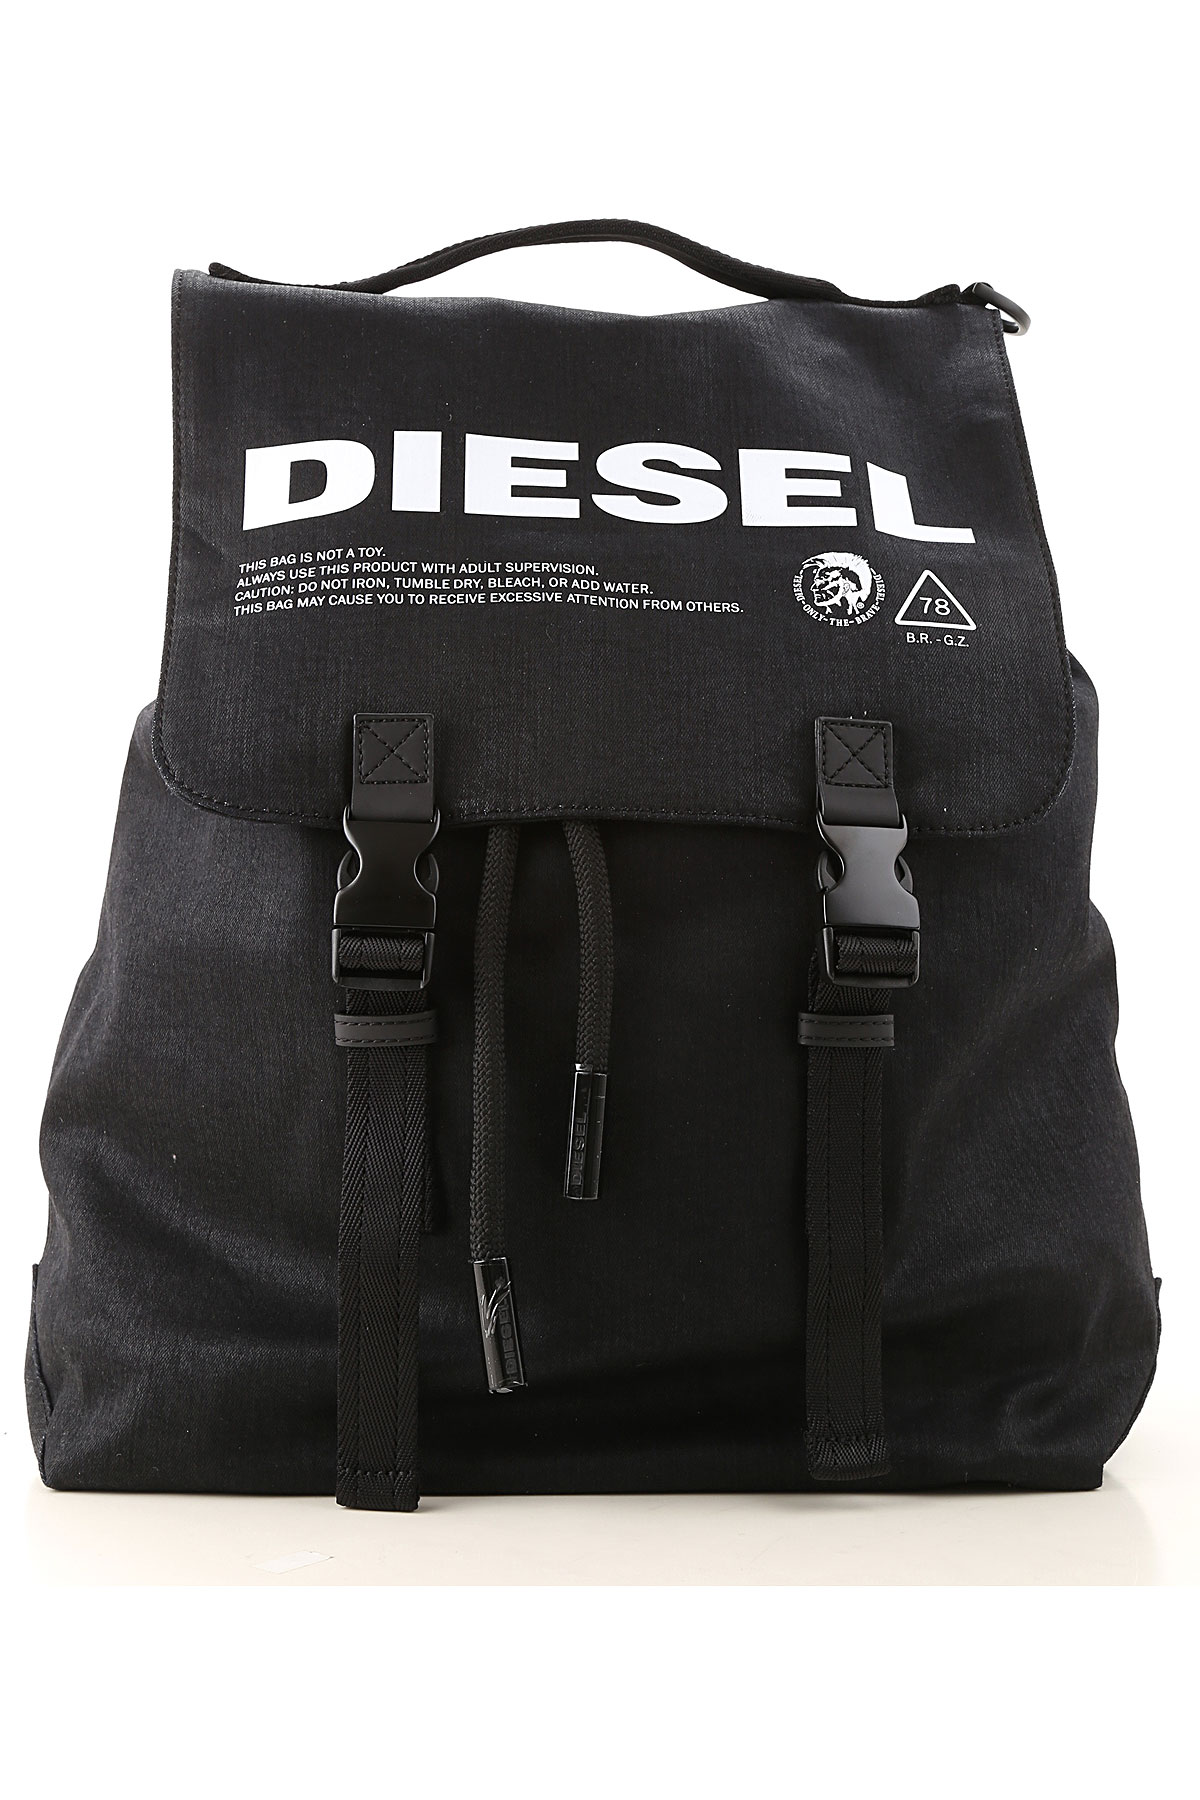 Diesel Backpack for Men, Black, Cotton, 2019